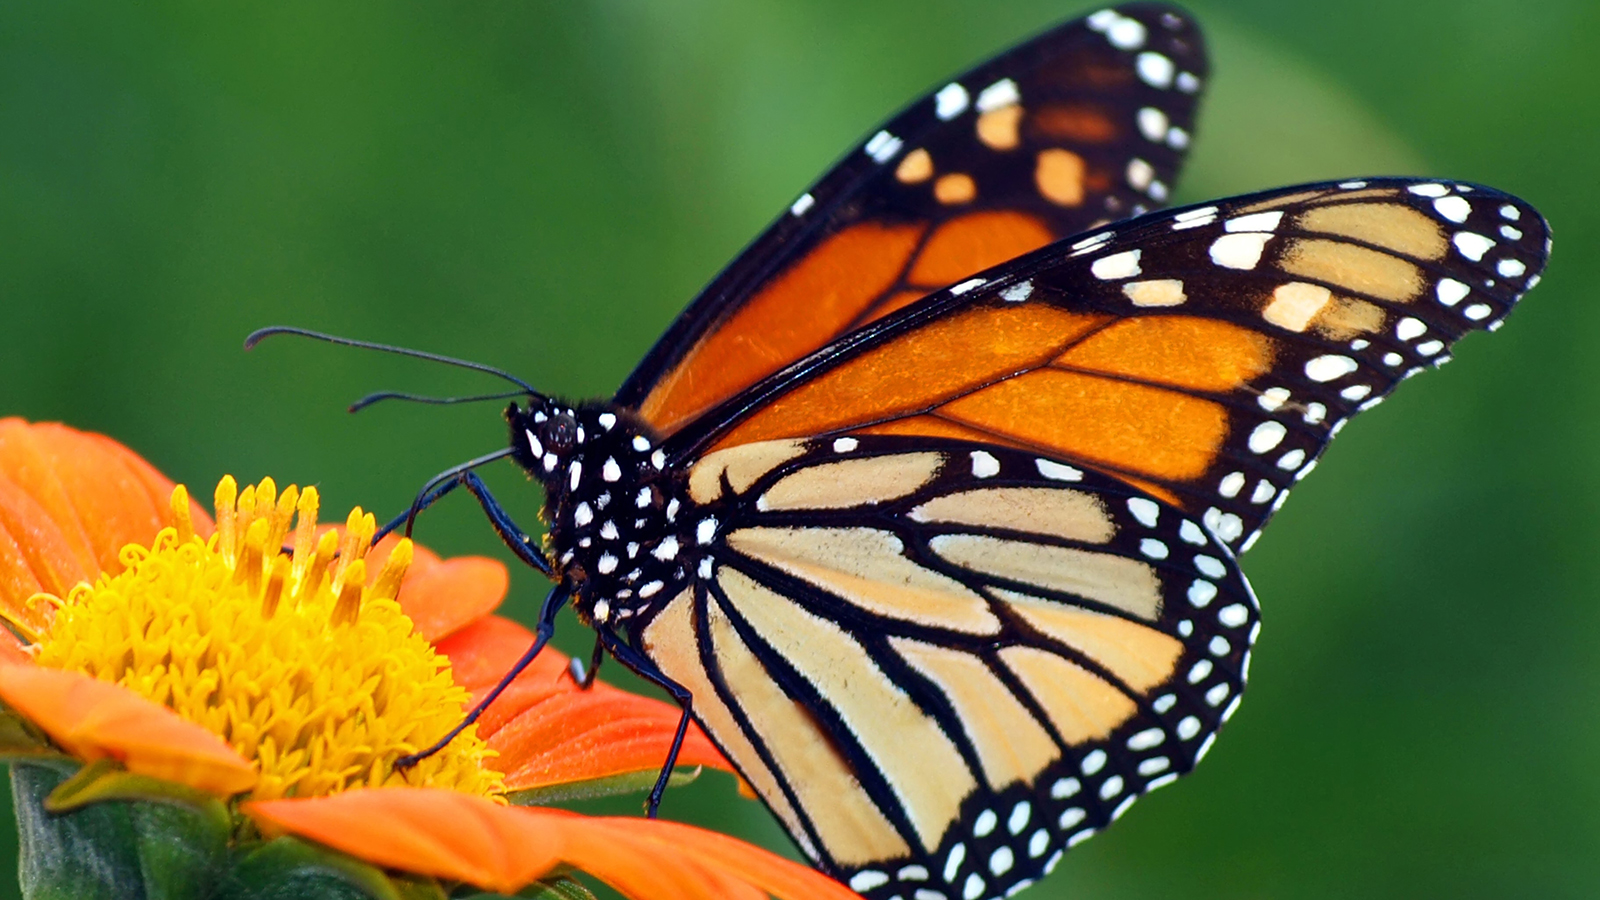 Nibley residents want to protect the monarch butterfly population from insecticide spraying.